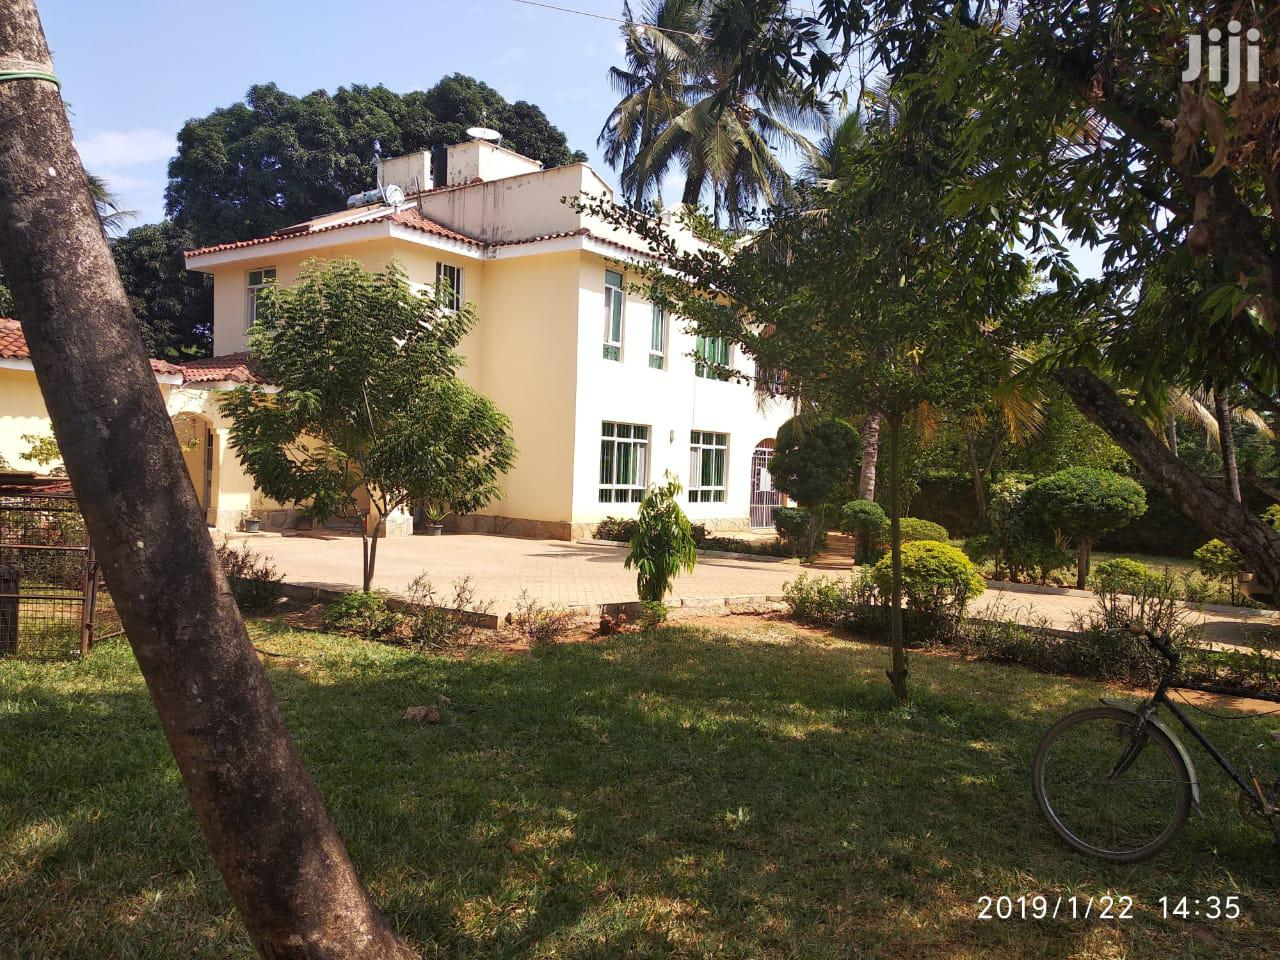 For Sale 4 Bedrooms Massionate Mtwapa